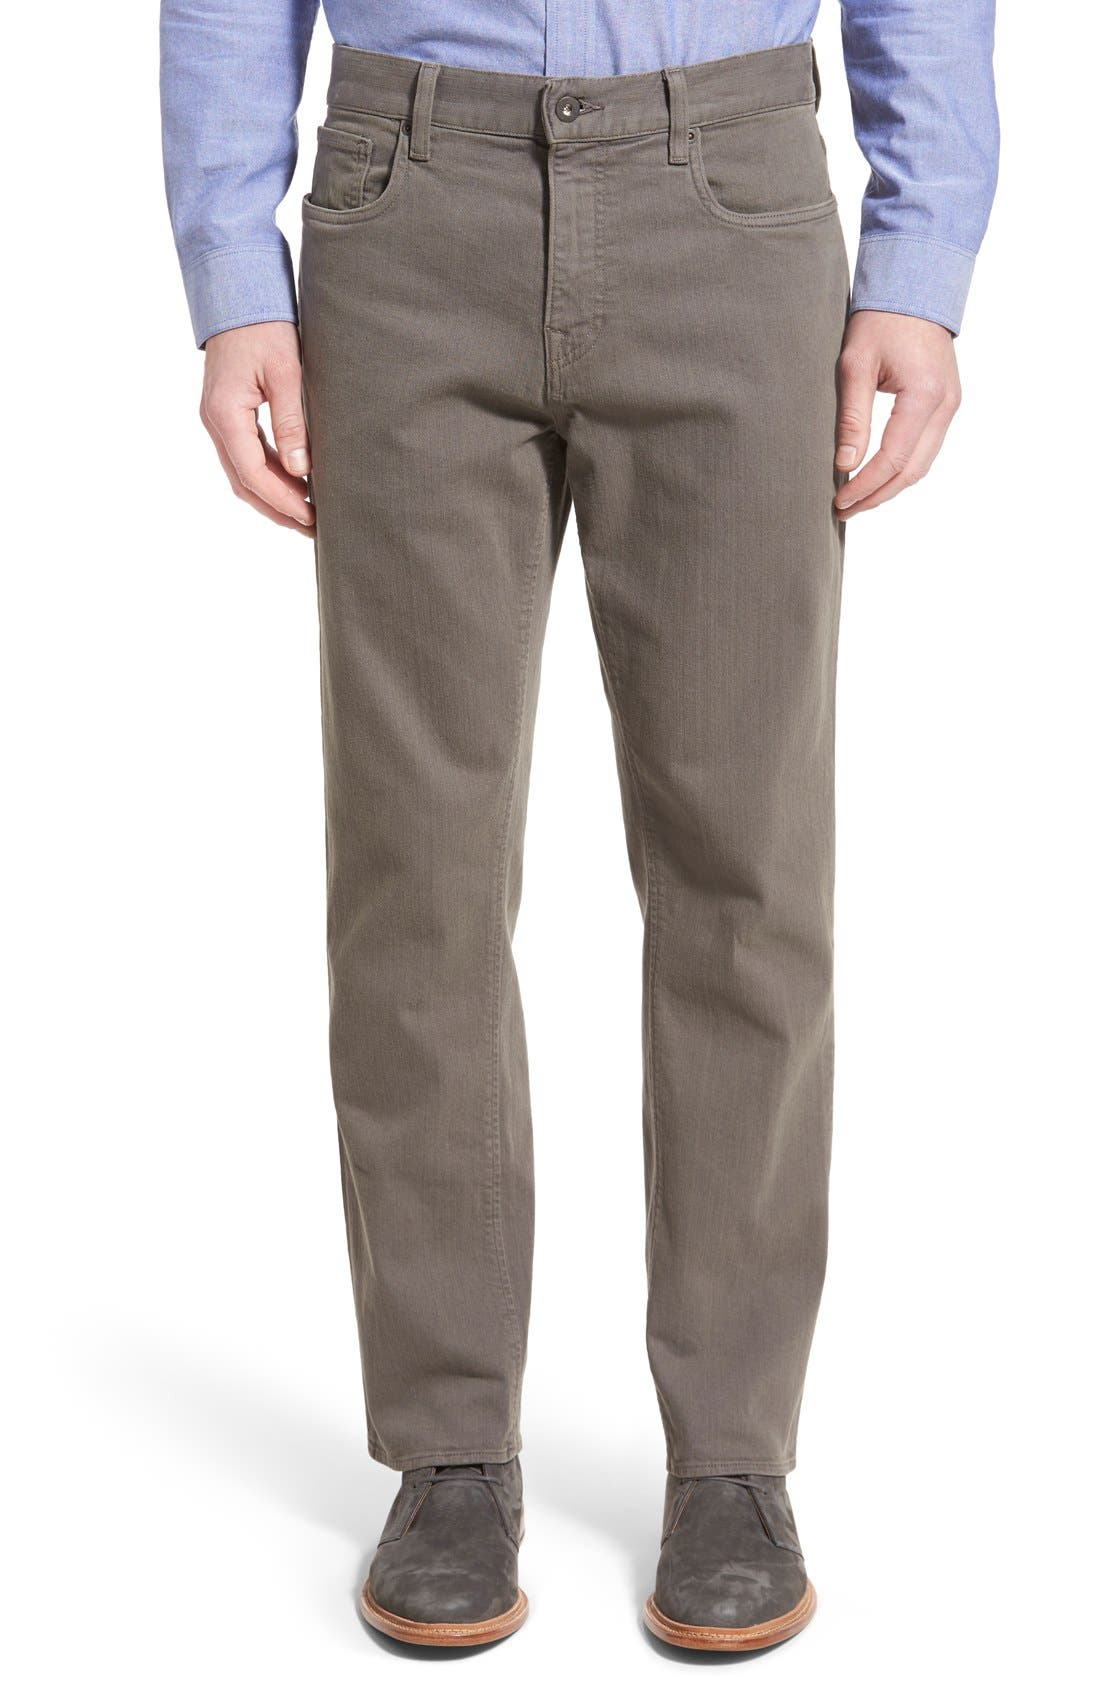 'Greenwood' Relaxed Fit Jeans,                         Main,                         color, Link Grey